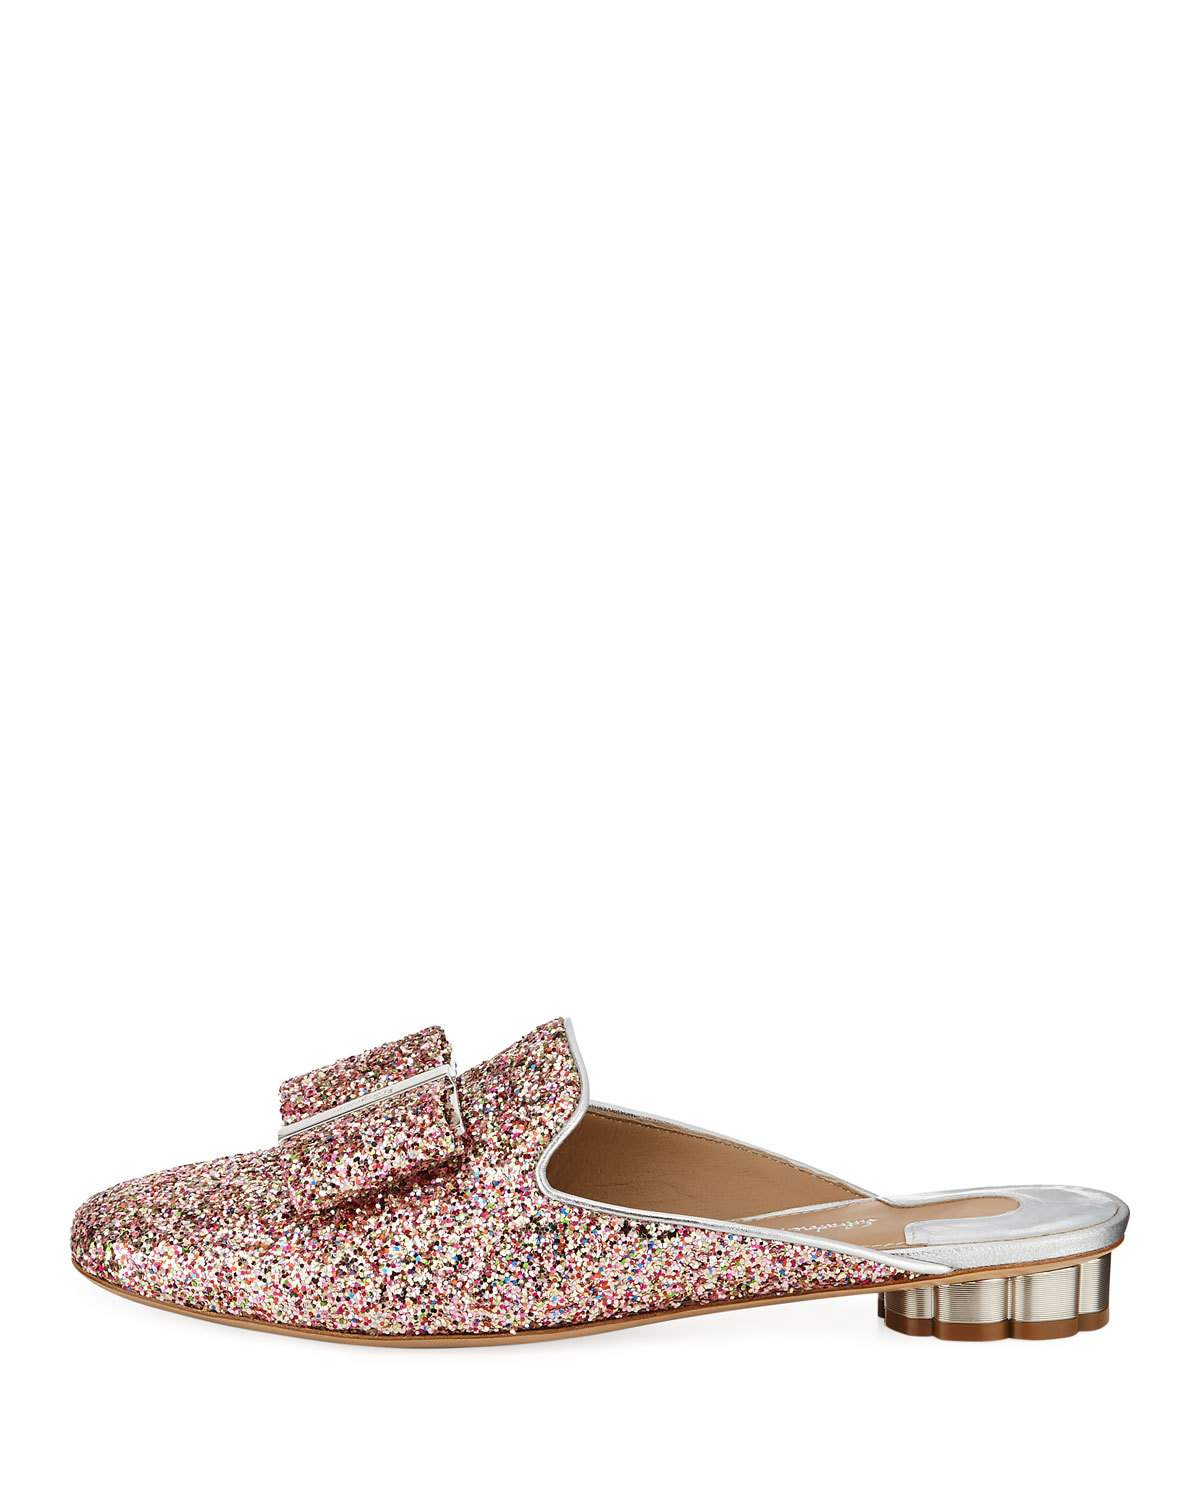 5a7741b8b580c8 Salvatore Ferragamo Tess Glitter Bow Slide Mule Flat with Flower Heel Bow  Slides